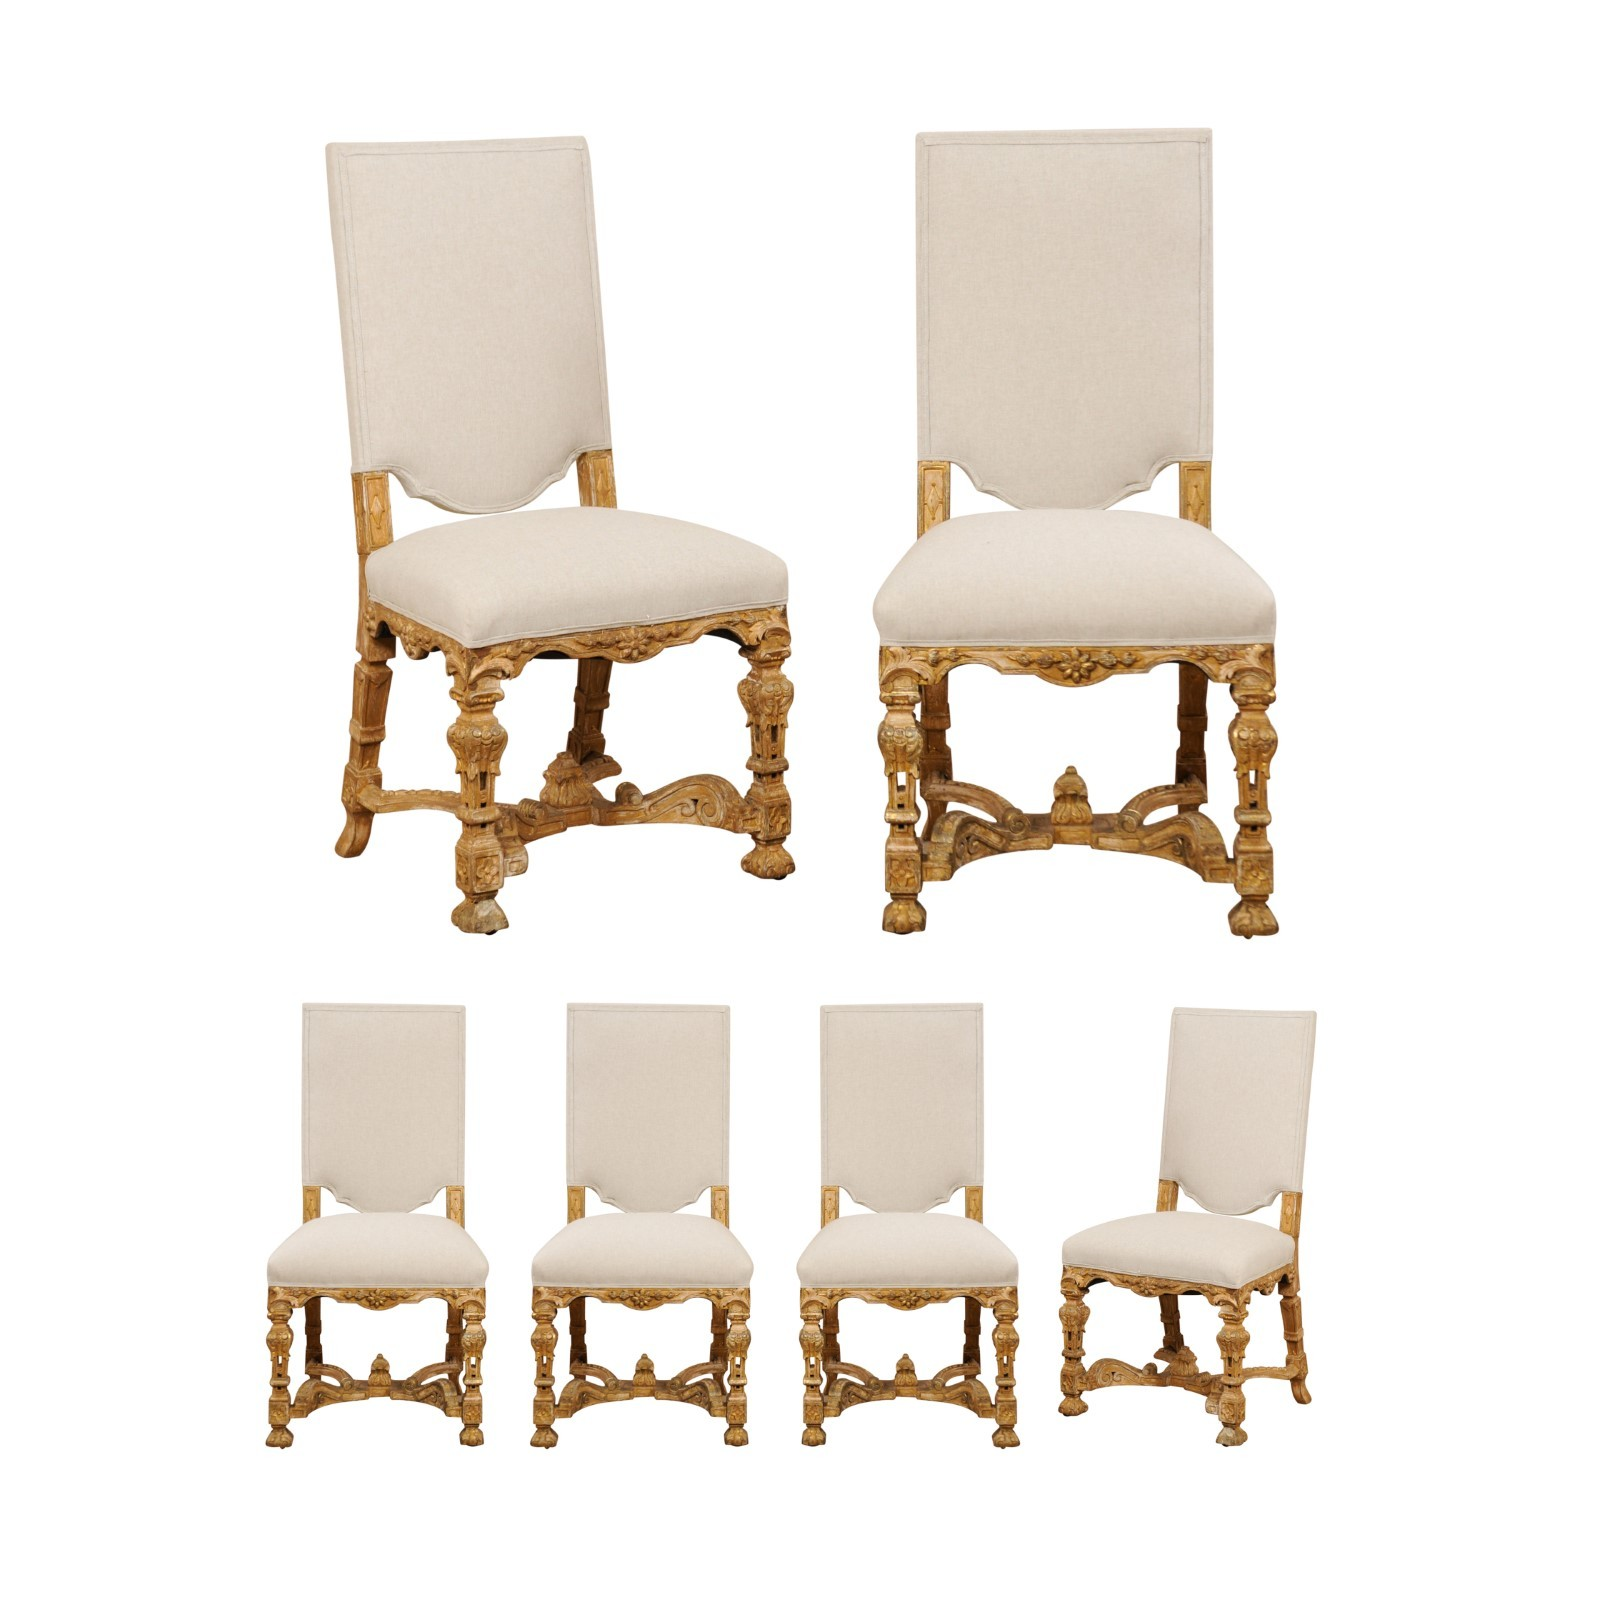 Set of Ornately Carved English Side Chairs